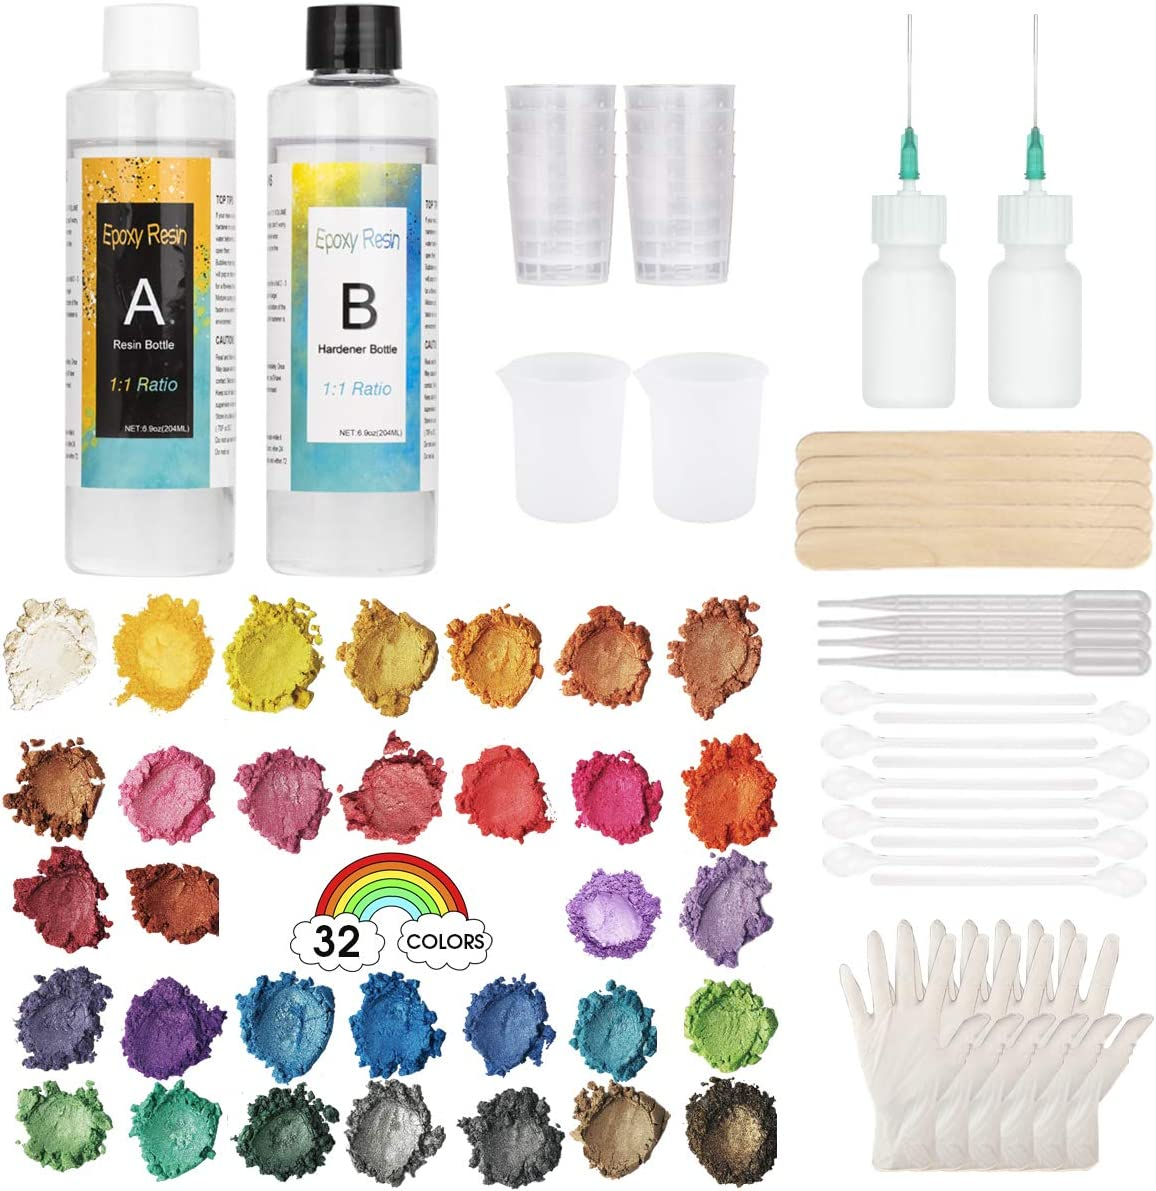 Clear Cast Epoxy Resin Kit, Cast Resin 13.8 Ounce, 32 Assorted Colors Mica Powders, Electric Blender, Measuring Cups, Syringes, Gloves, Pipettes, Mixing Sticks, Clear Spoons